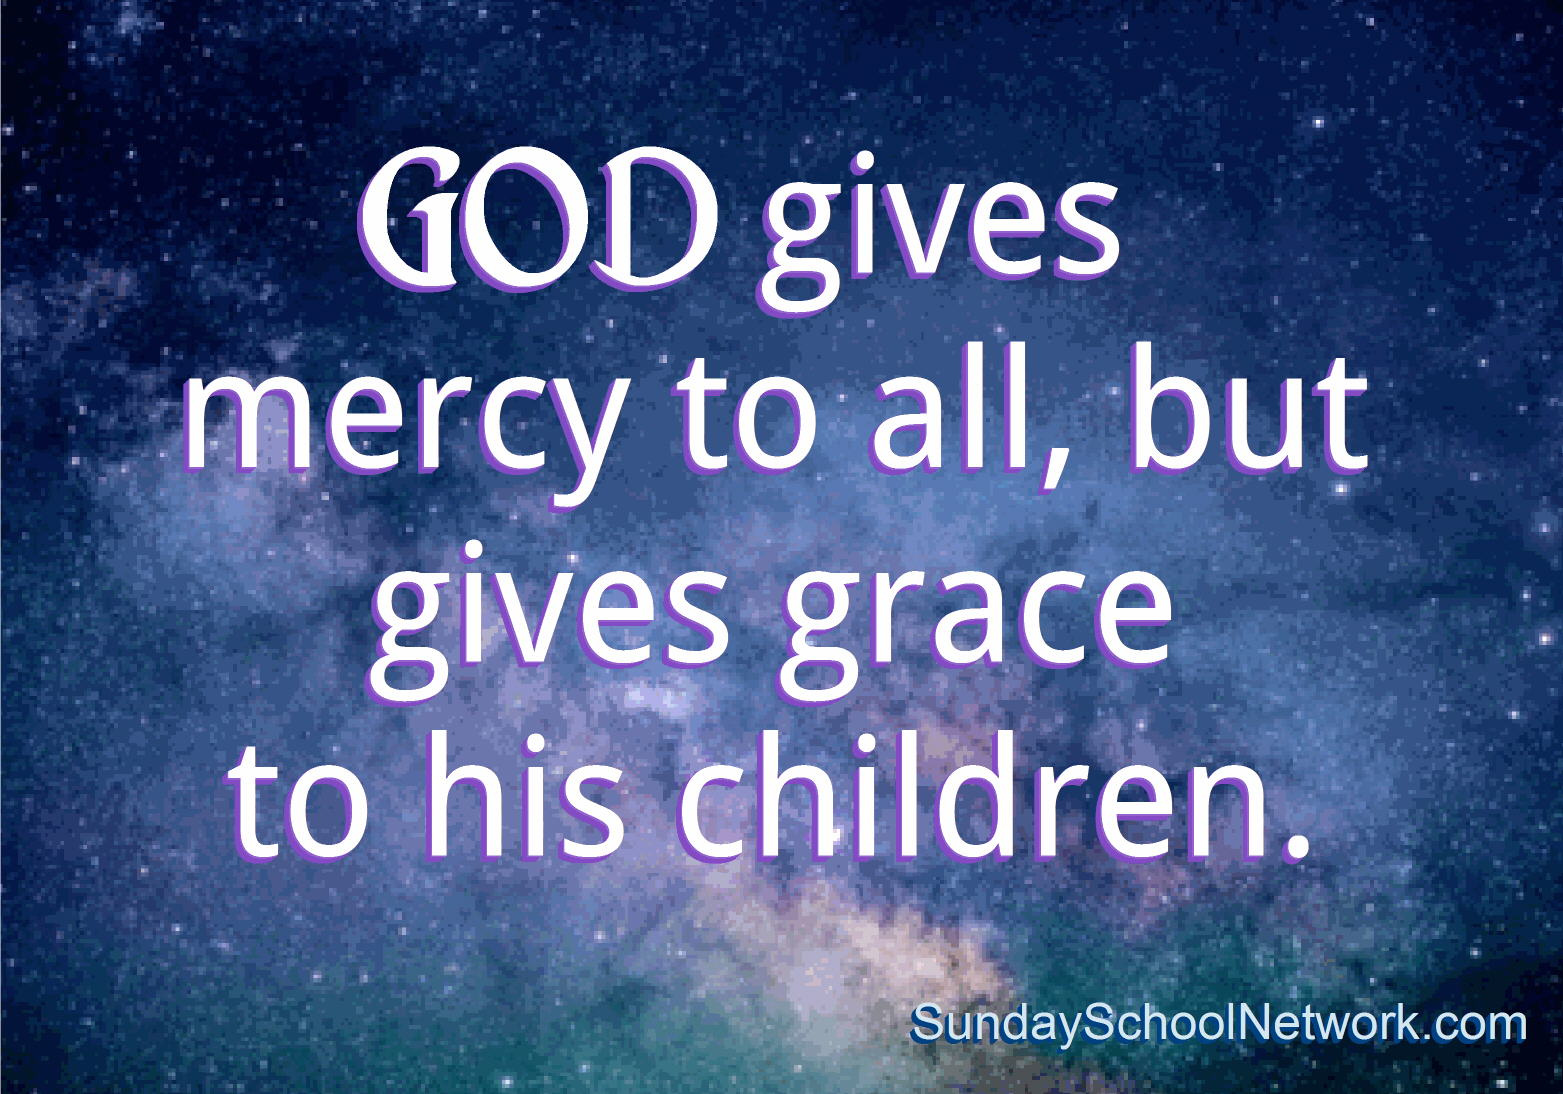 God gives grace to his children